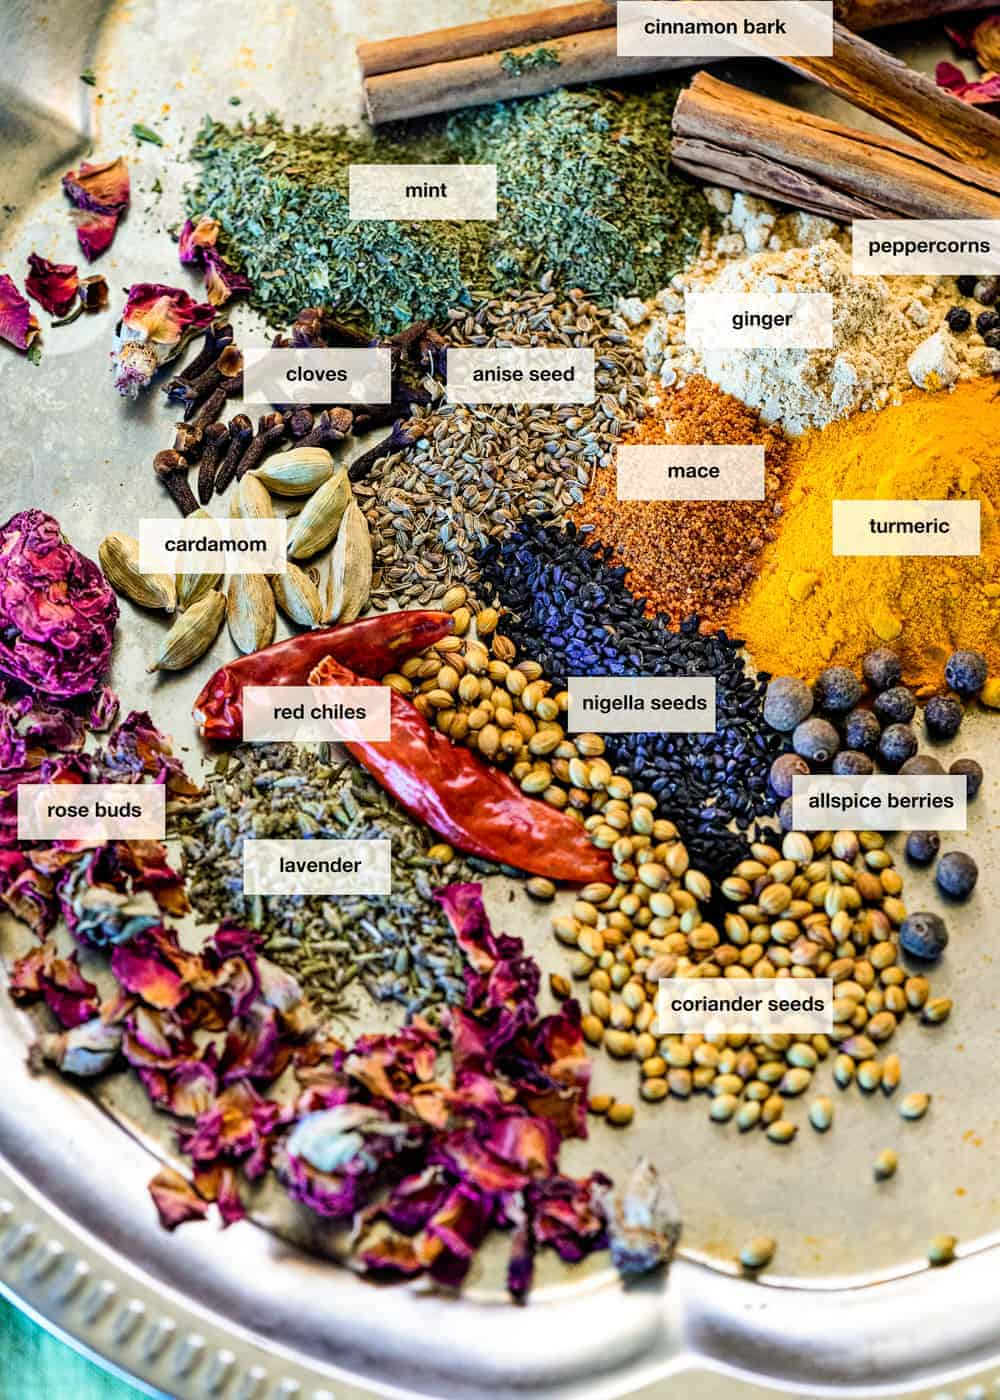 assortment of dried edible flowers and other dry spices and seeds on a plate